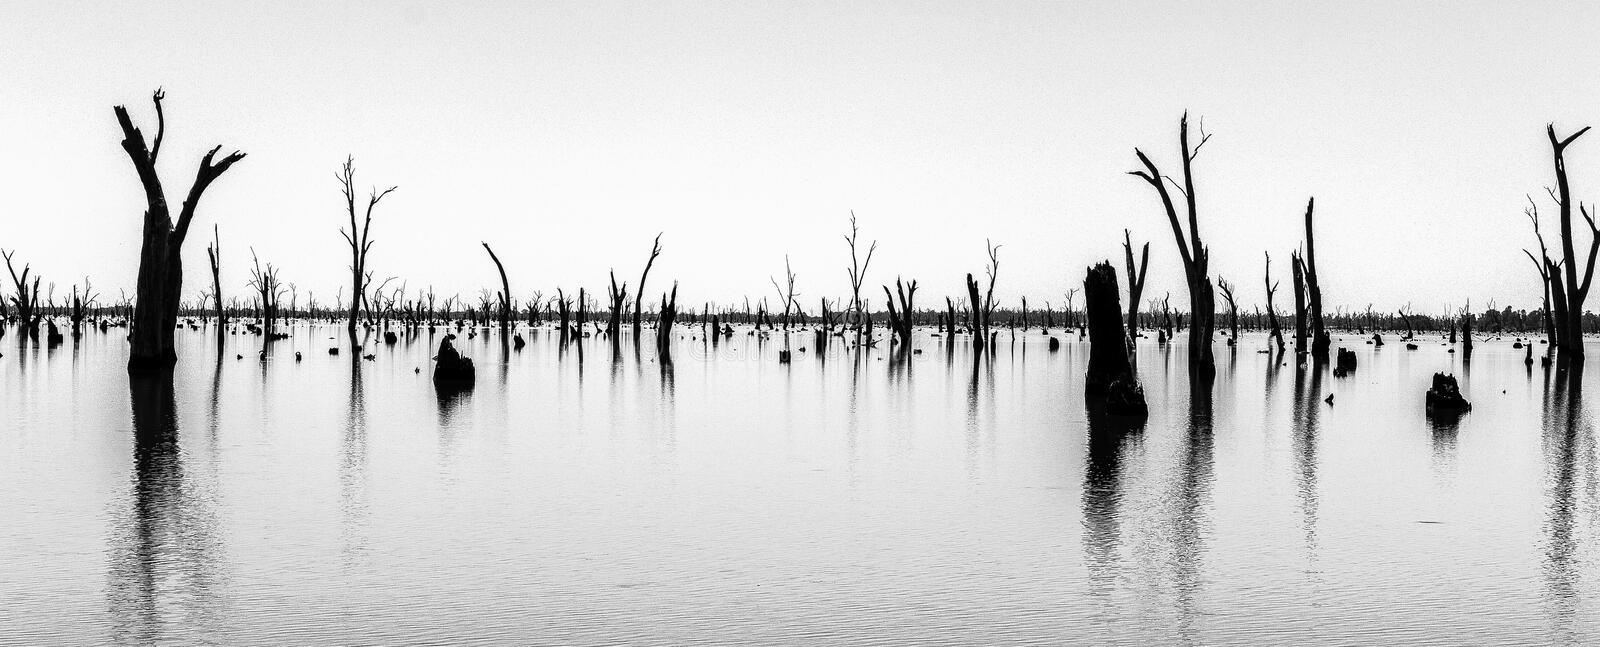 Photograph of dead tree trunks sticking out of the water, Australia royalty free stock photos